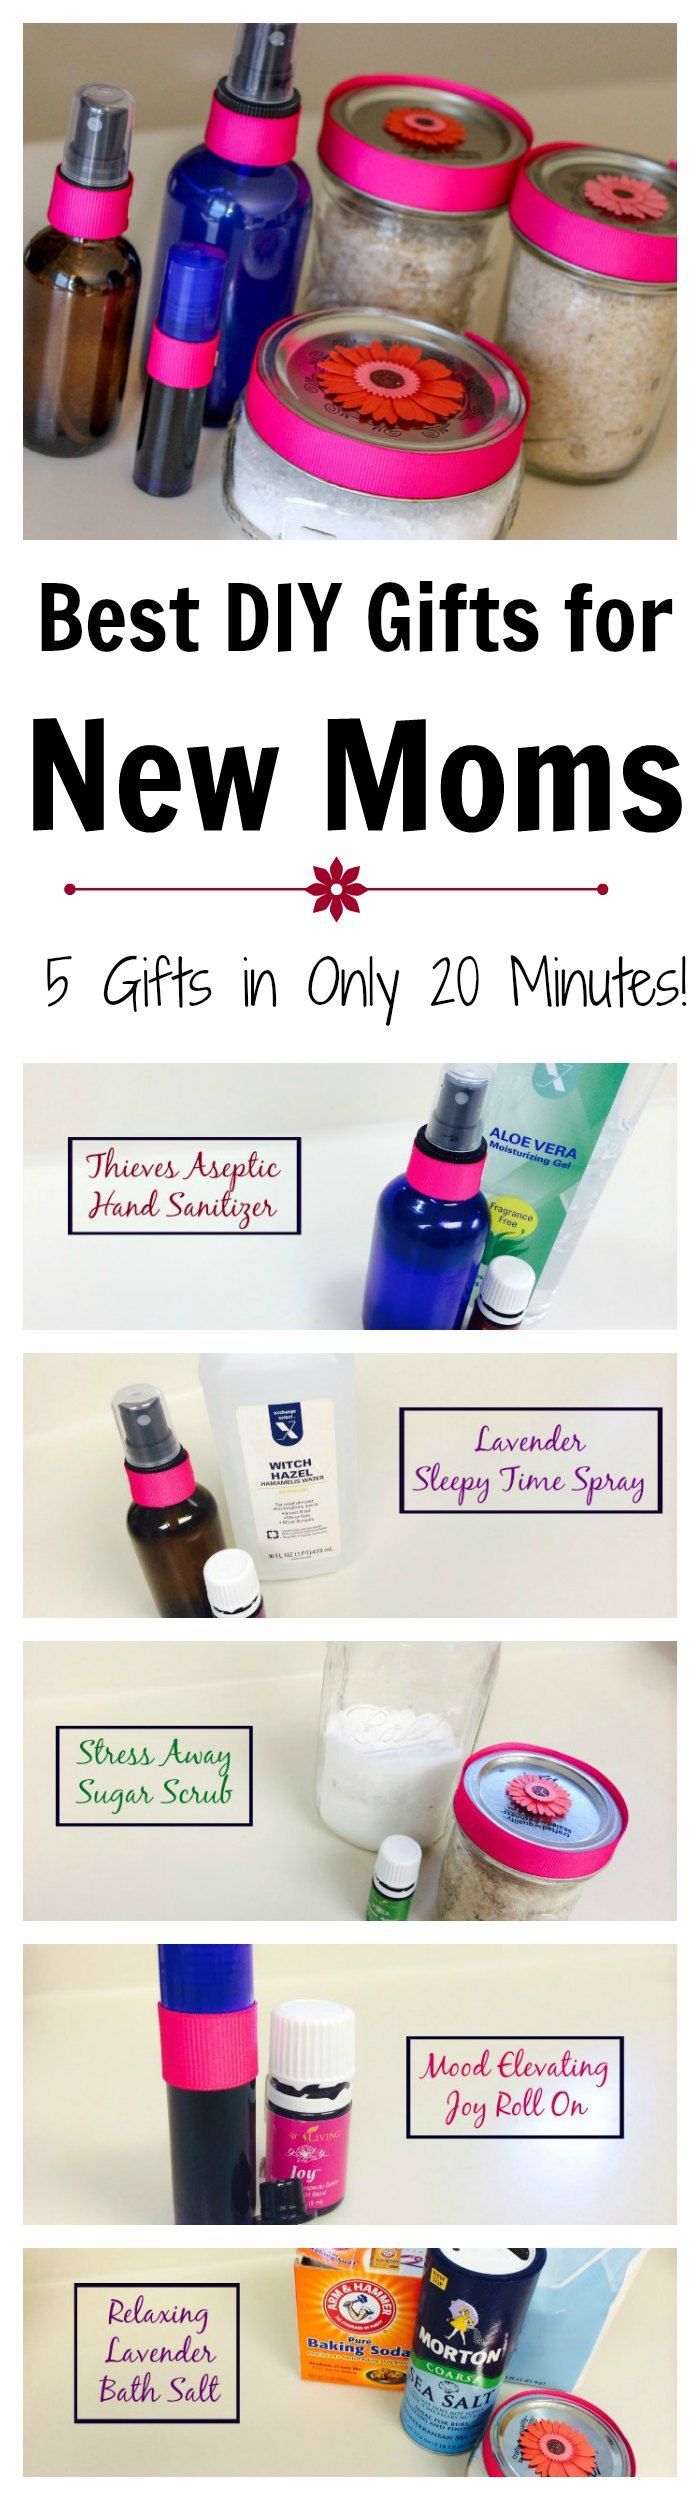 Best Christmas Gifts For New Moms Part - 50: 5 Best DIY Gifts For New Moms In Under 20 Minutes